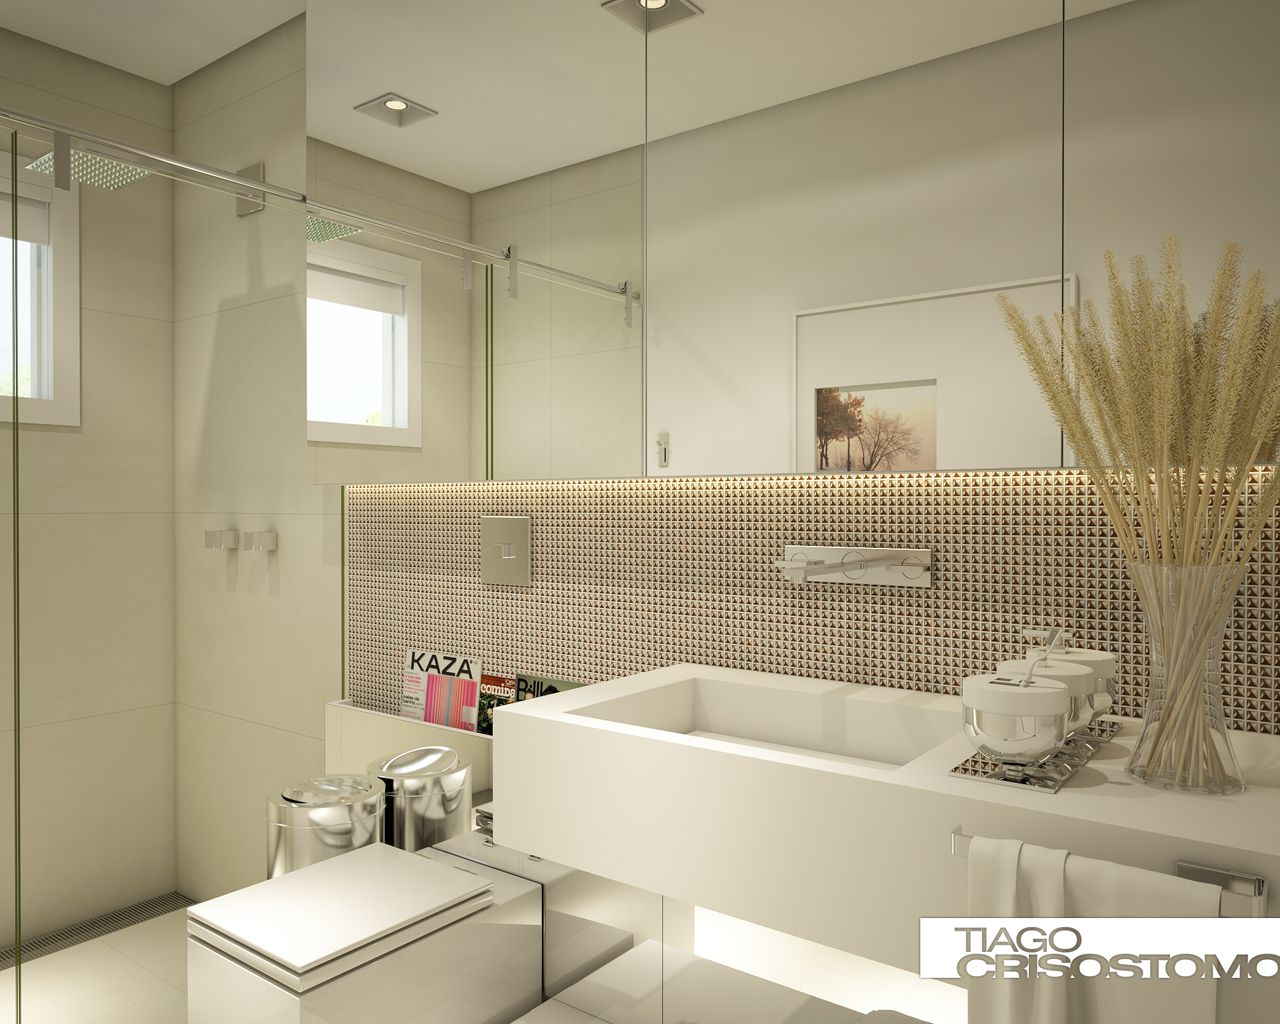 apartamentobanheiros on Pinterest  Shower Niche, Modern Bathrooms and Bathroom -> Pia Para Banheiro Sketchup